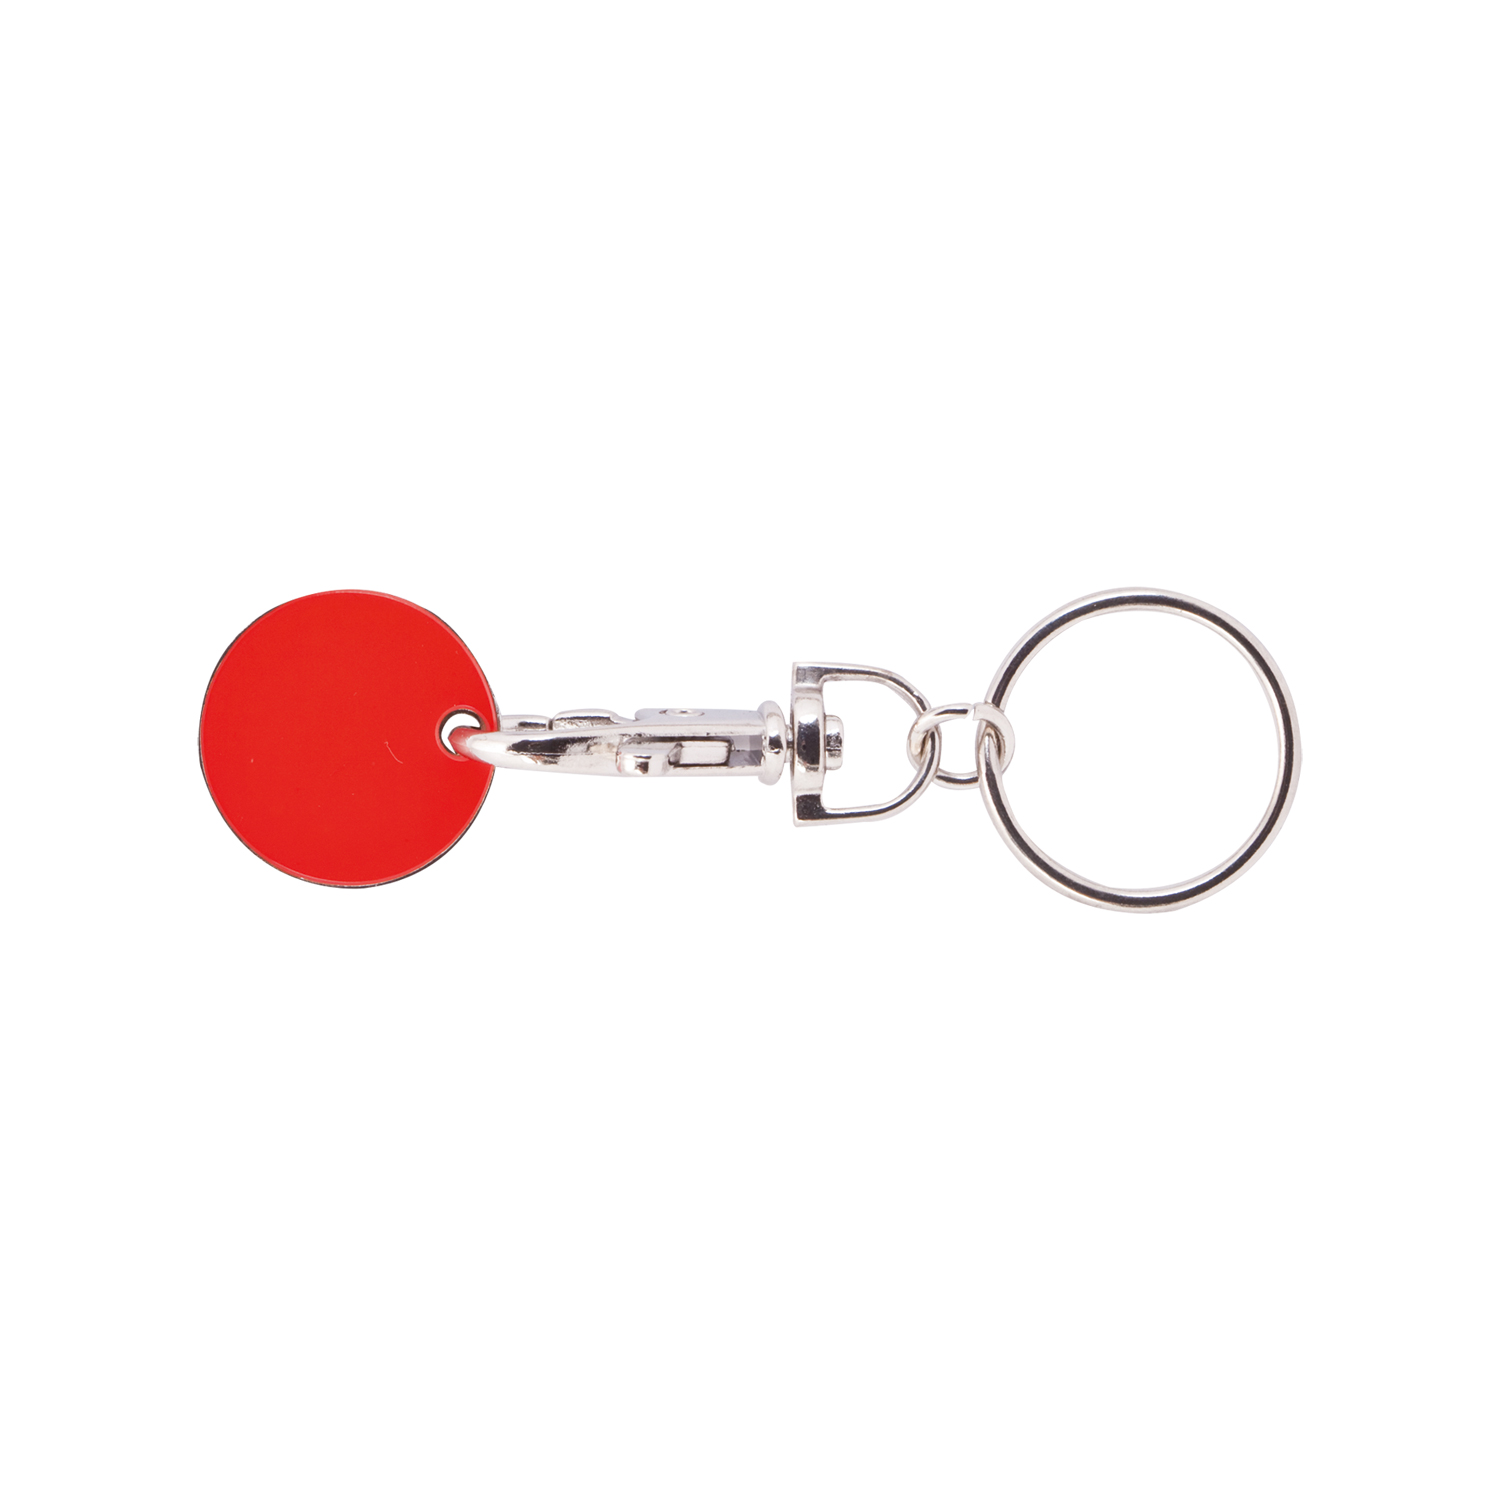 Keychain 059 (Shopping trolley coin keychain) - hmi47059-04 (Red)